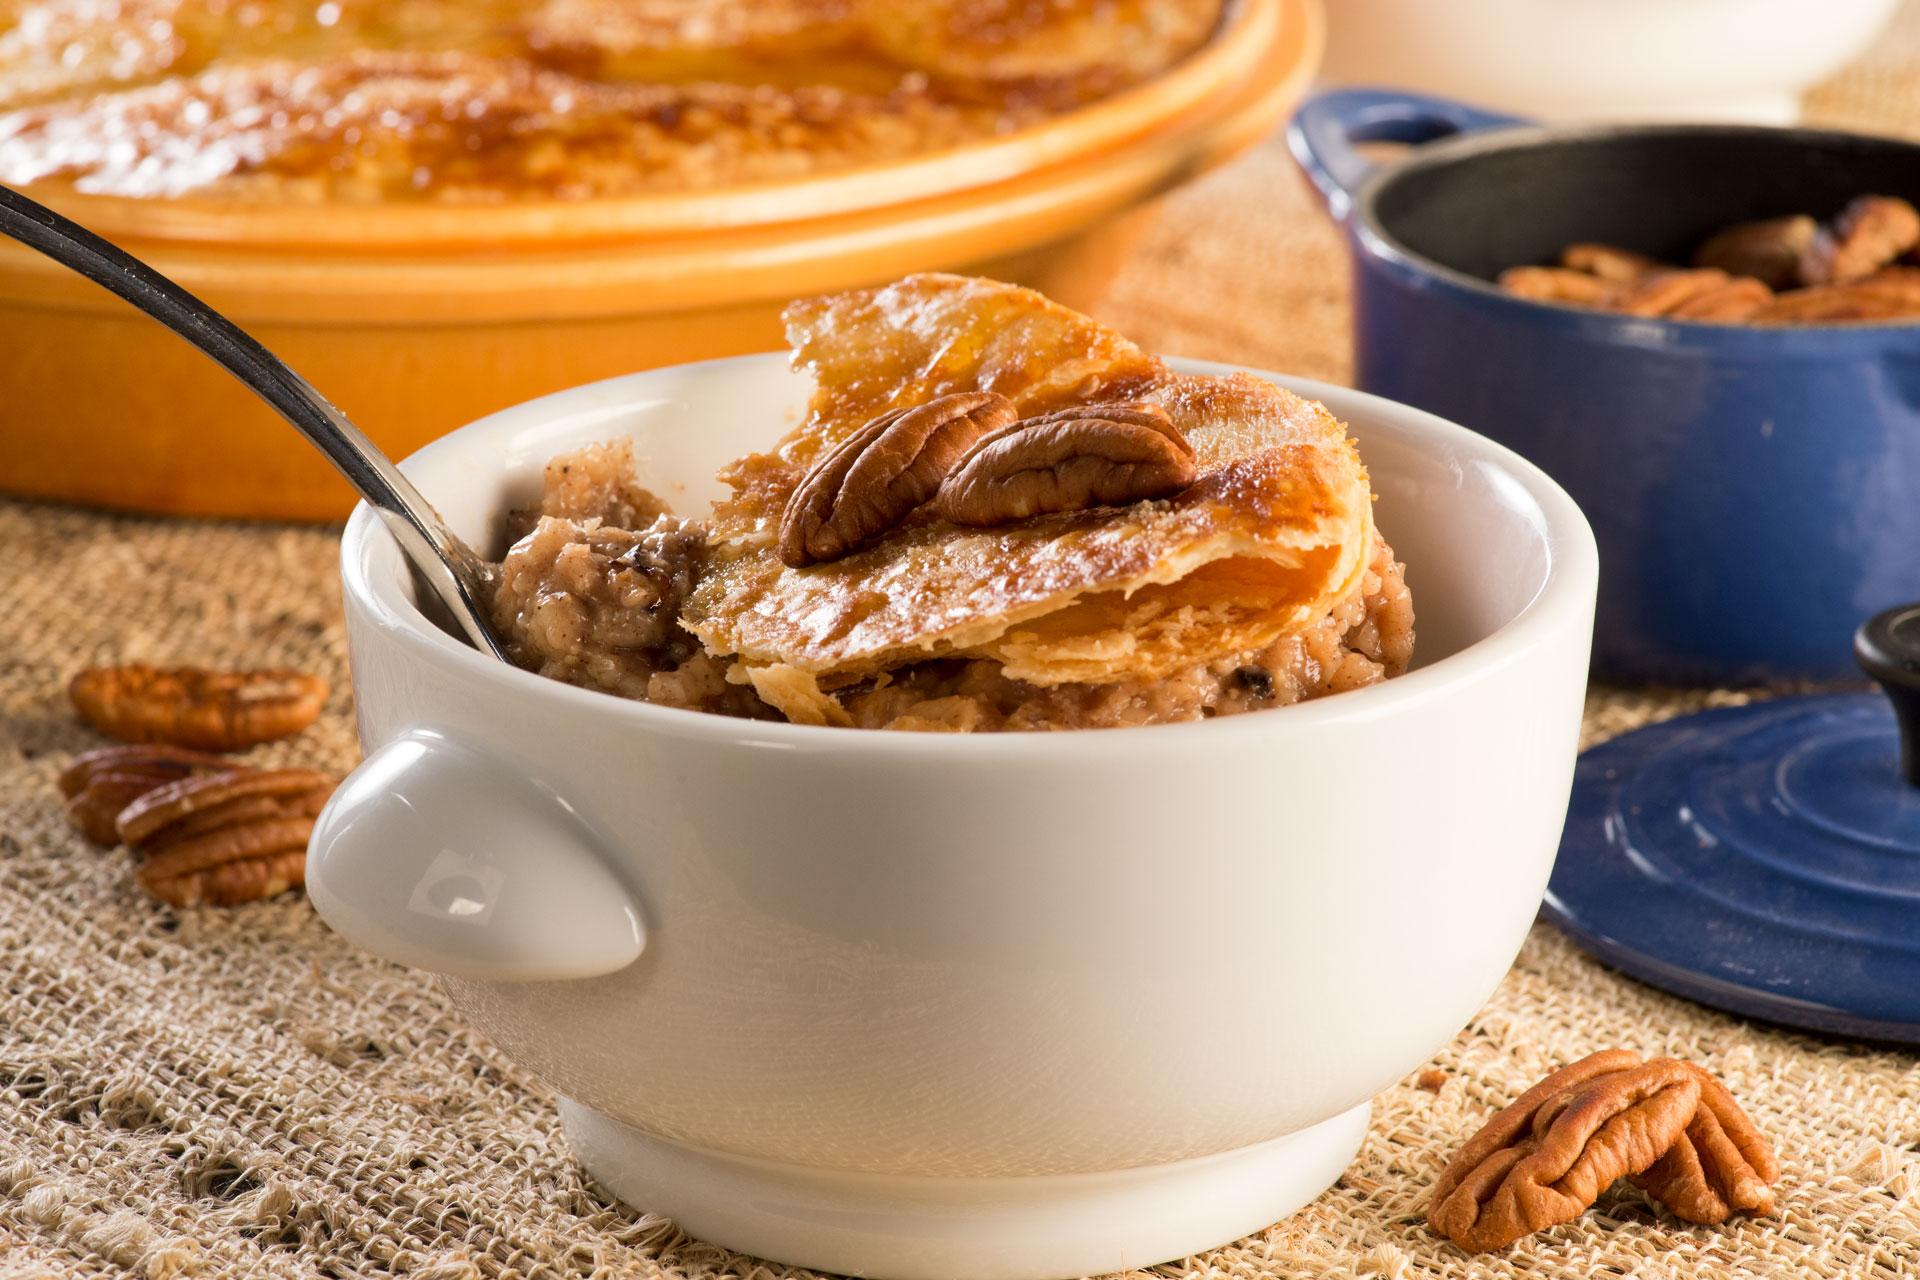 Here's an easy way to take breakfast with you, or enjoy it at home. It's the perfect mix of sweet and savory with a lot of health thrown in! If you love oatmeal, and you love pecan pie, you'll LOVE this!